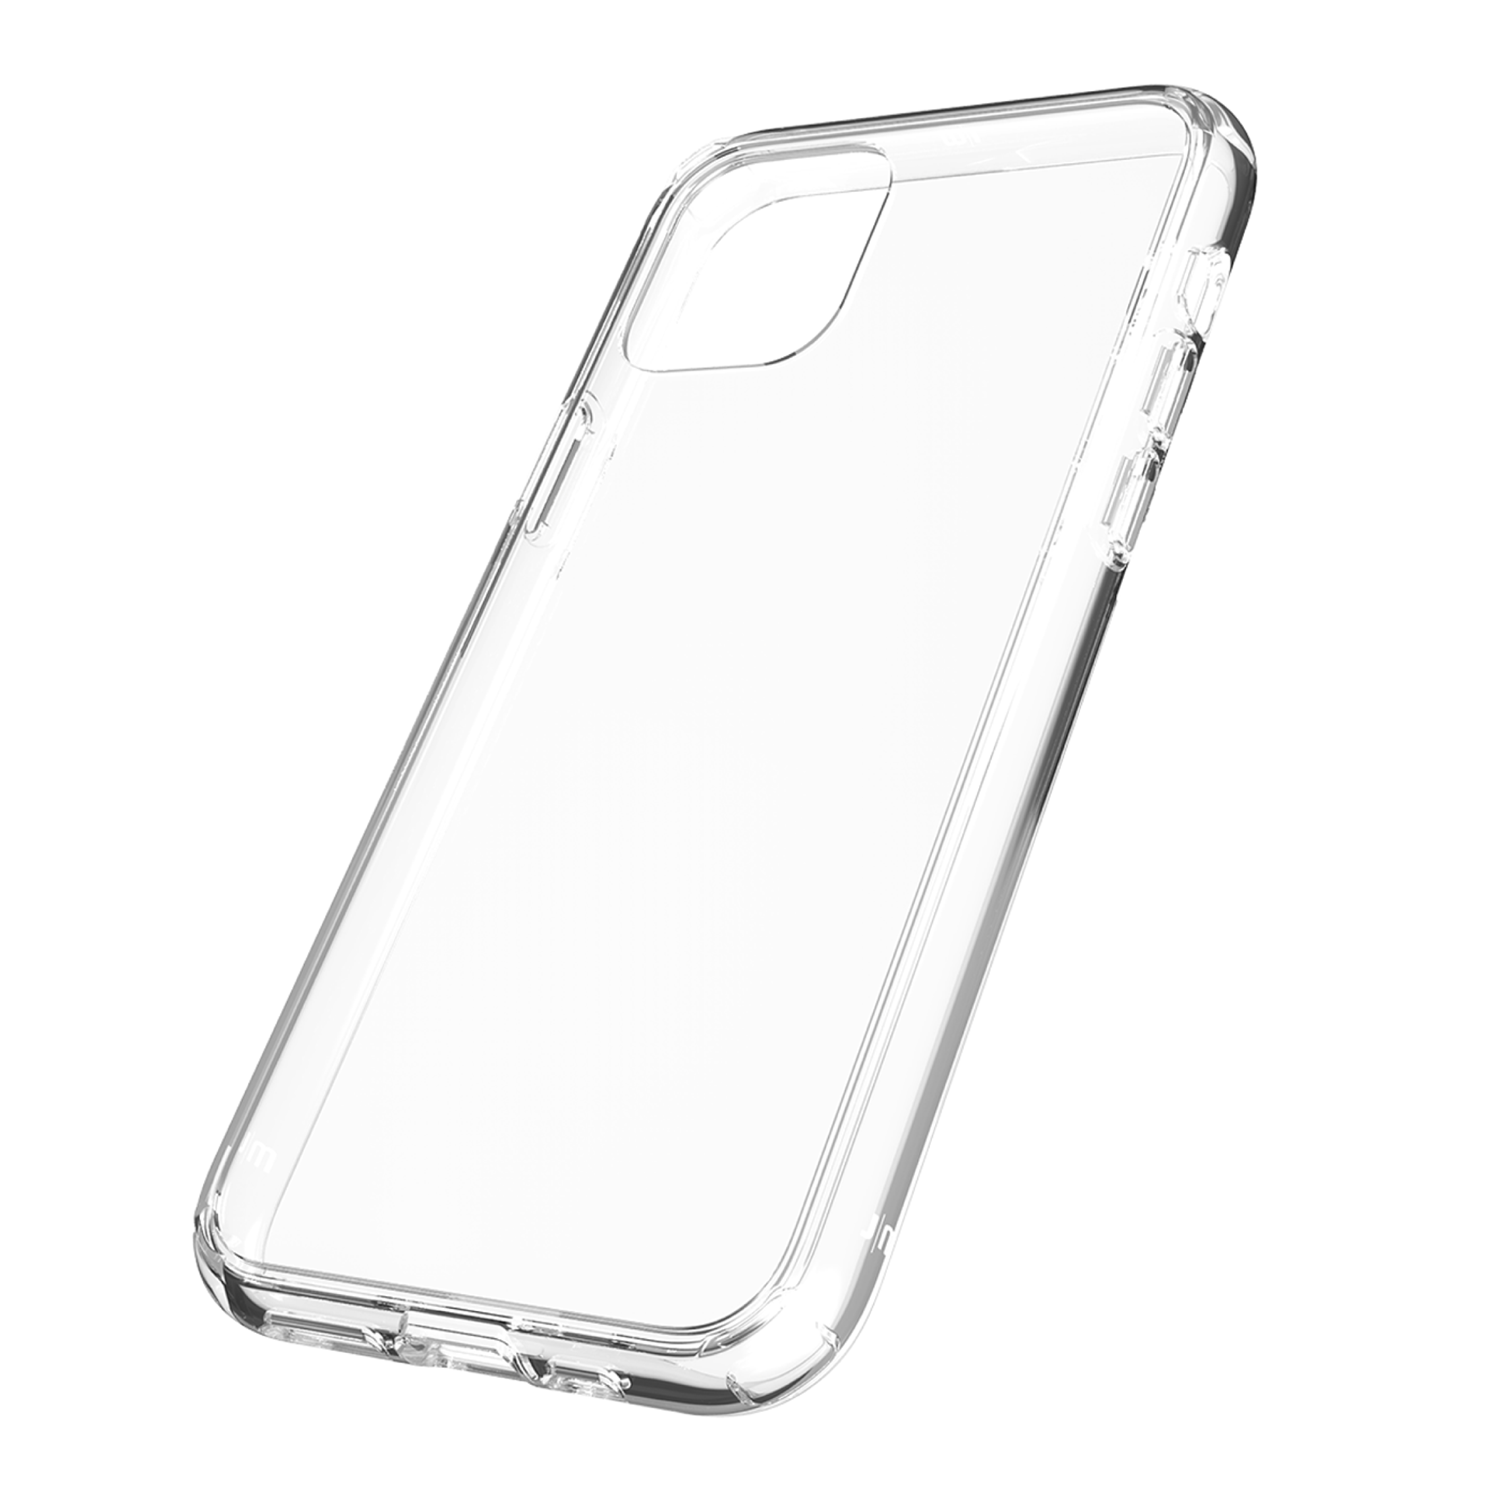 TENC case for iPhone 11 Pro Max - Clear